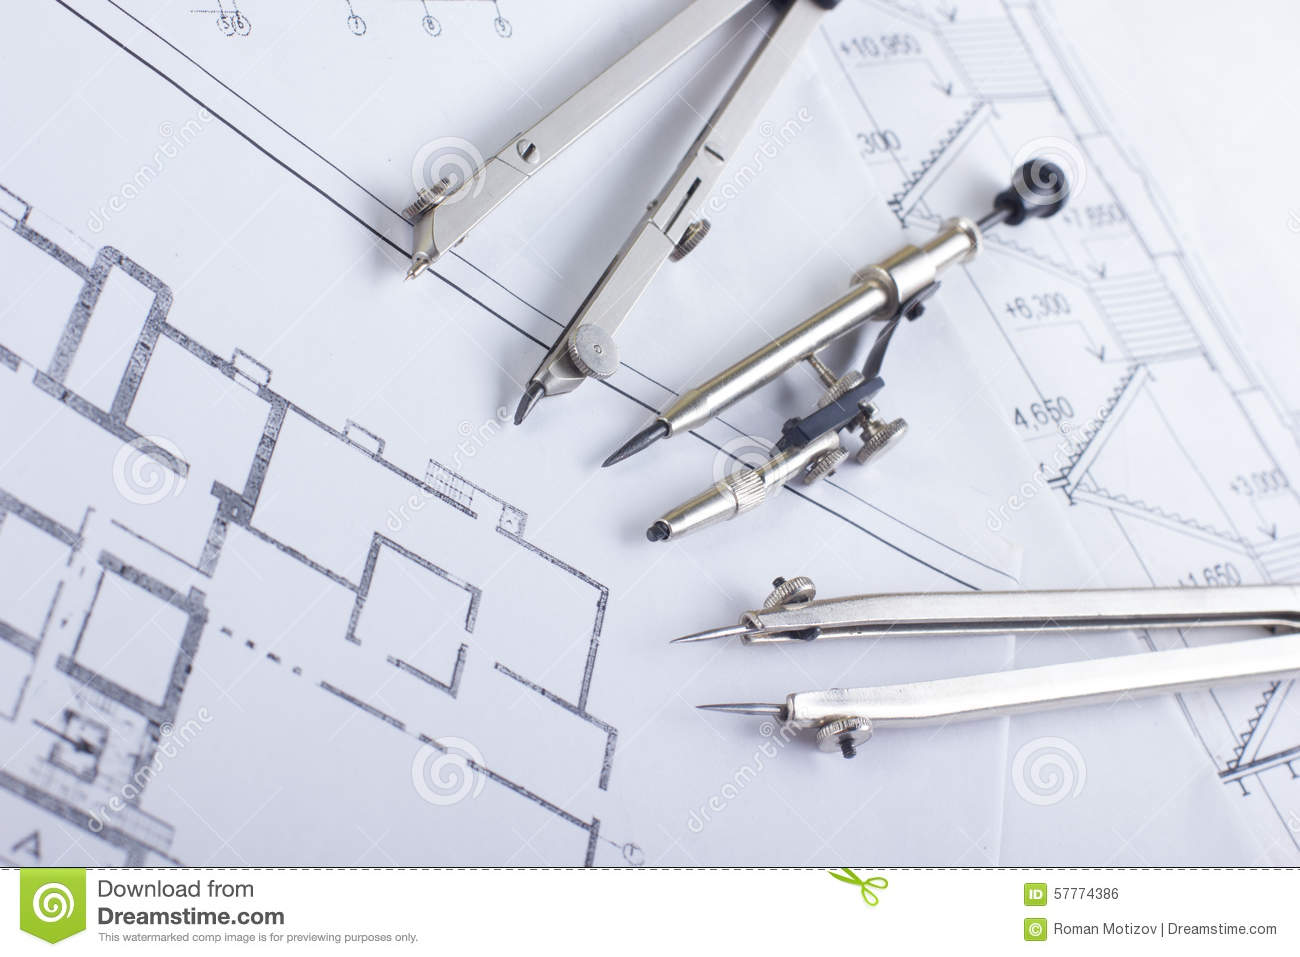 Architectural project blueprints and divider compass on plans download architectural project blueprints and divider compass on plans engineering tools view from the top malvernweather Choice Image